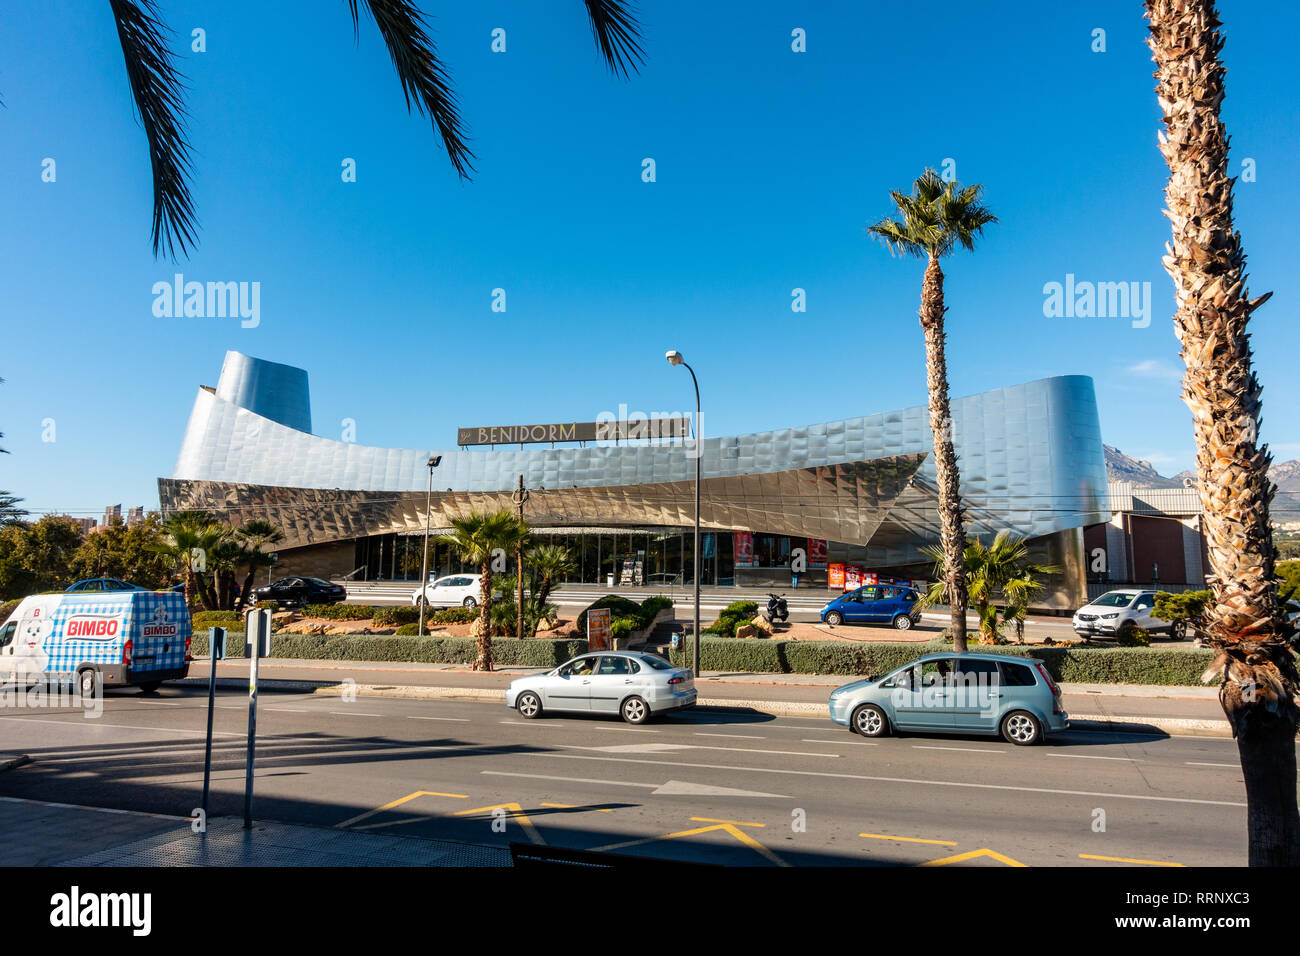 The Benidorm Palace, famous show bar cabaret club in Benidorm, Costa Blanca, Spain with it's distinctive shape and stainless steel finish. Stock Photo